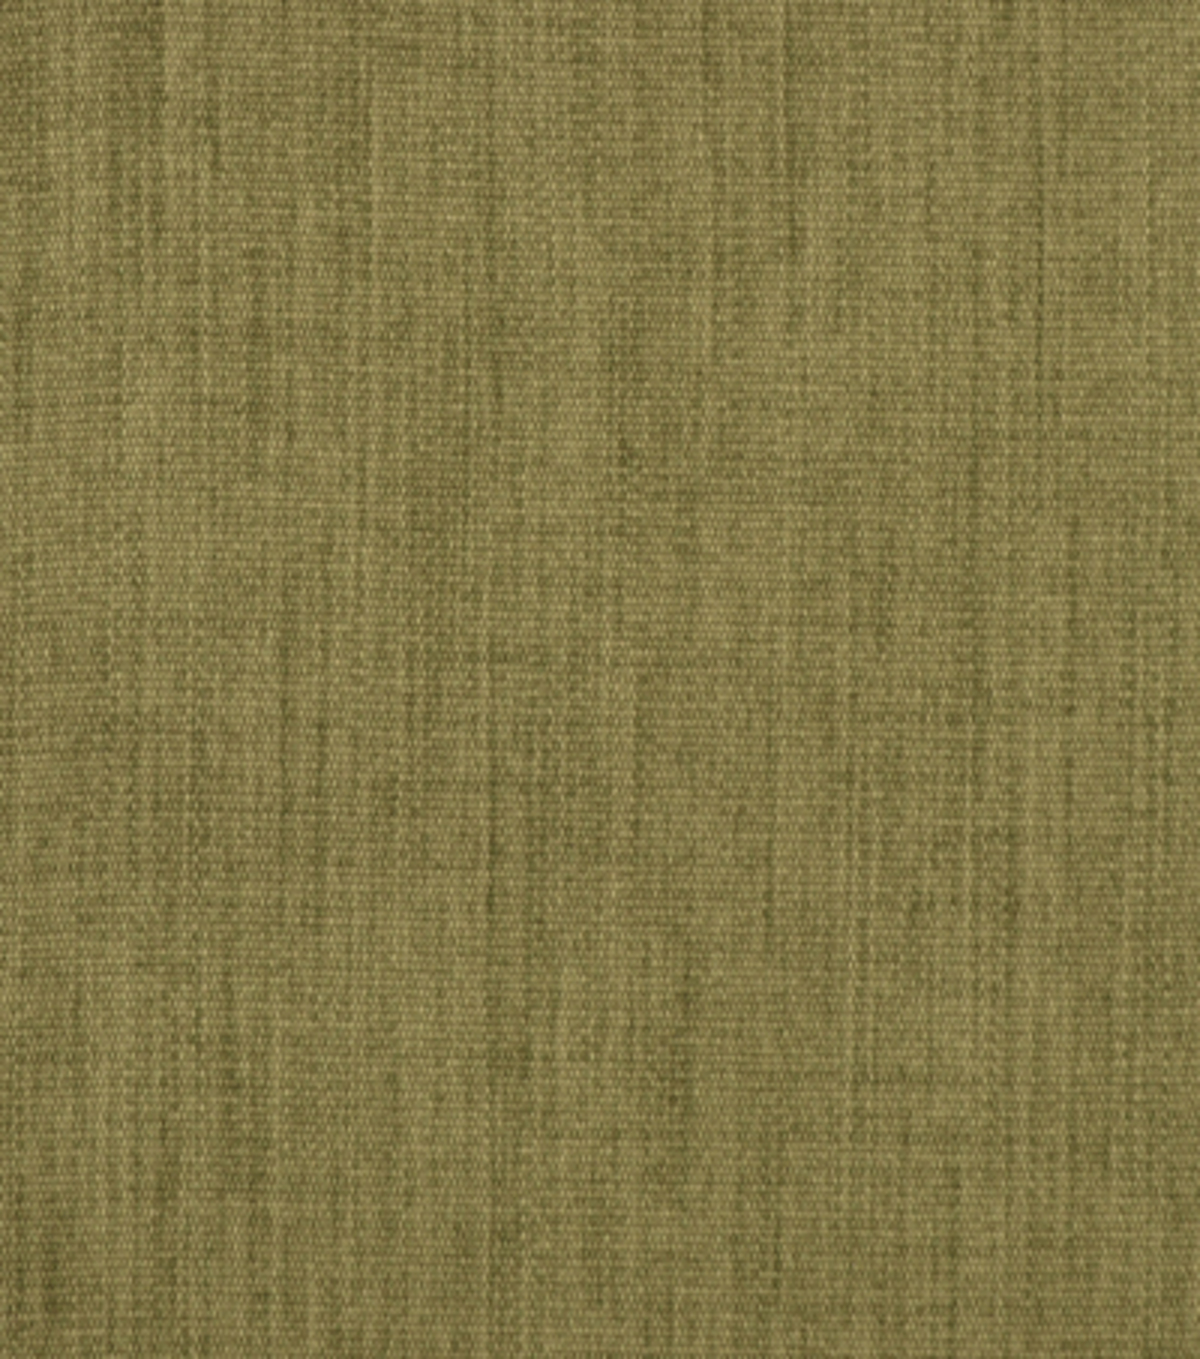 Home Decor 8\u0022x8\u0022 Fabric Swatch-Covington Ibiza 197 Flax